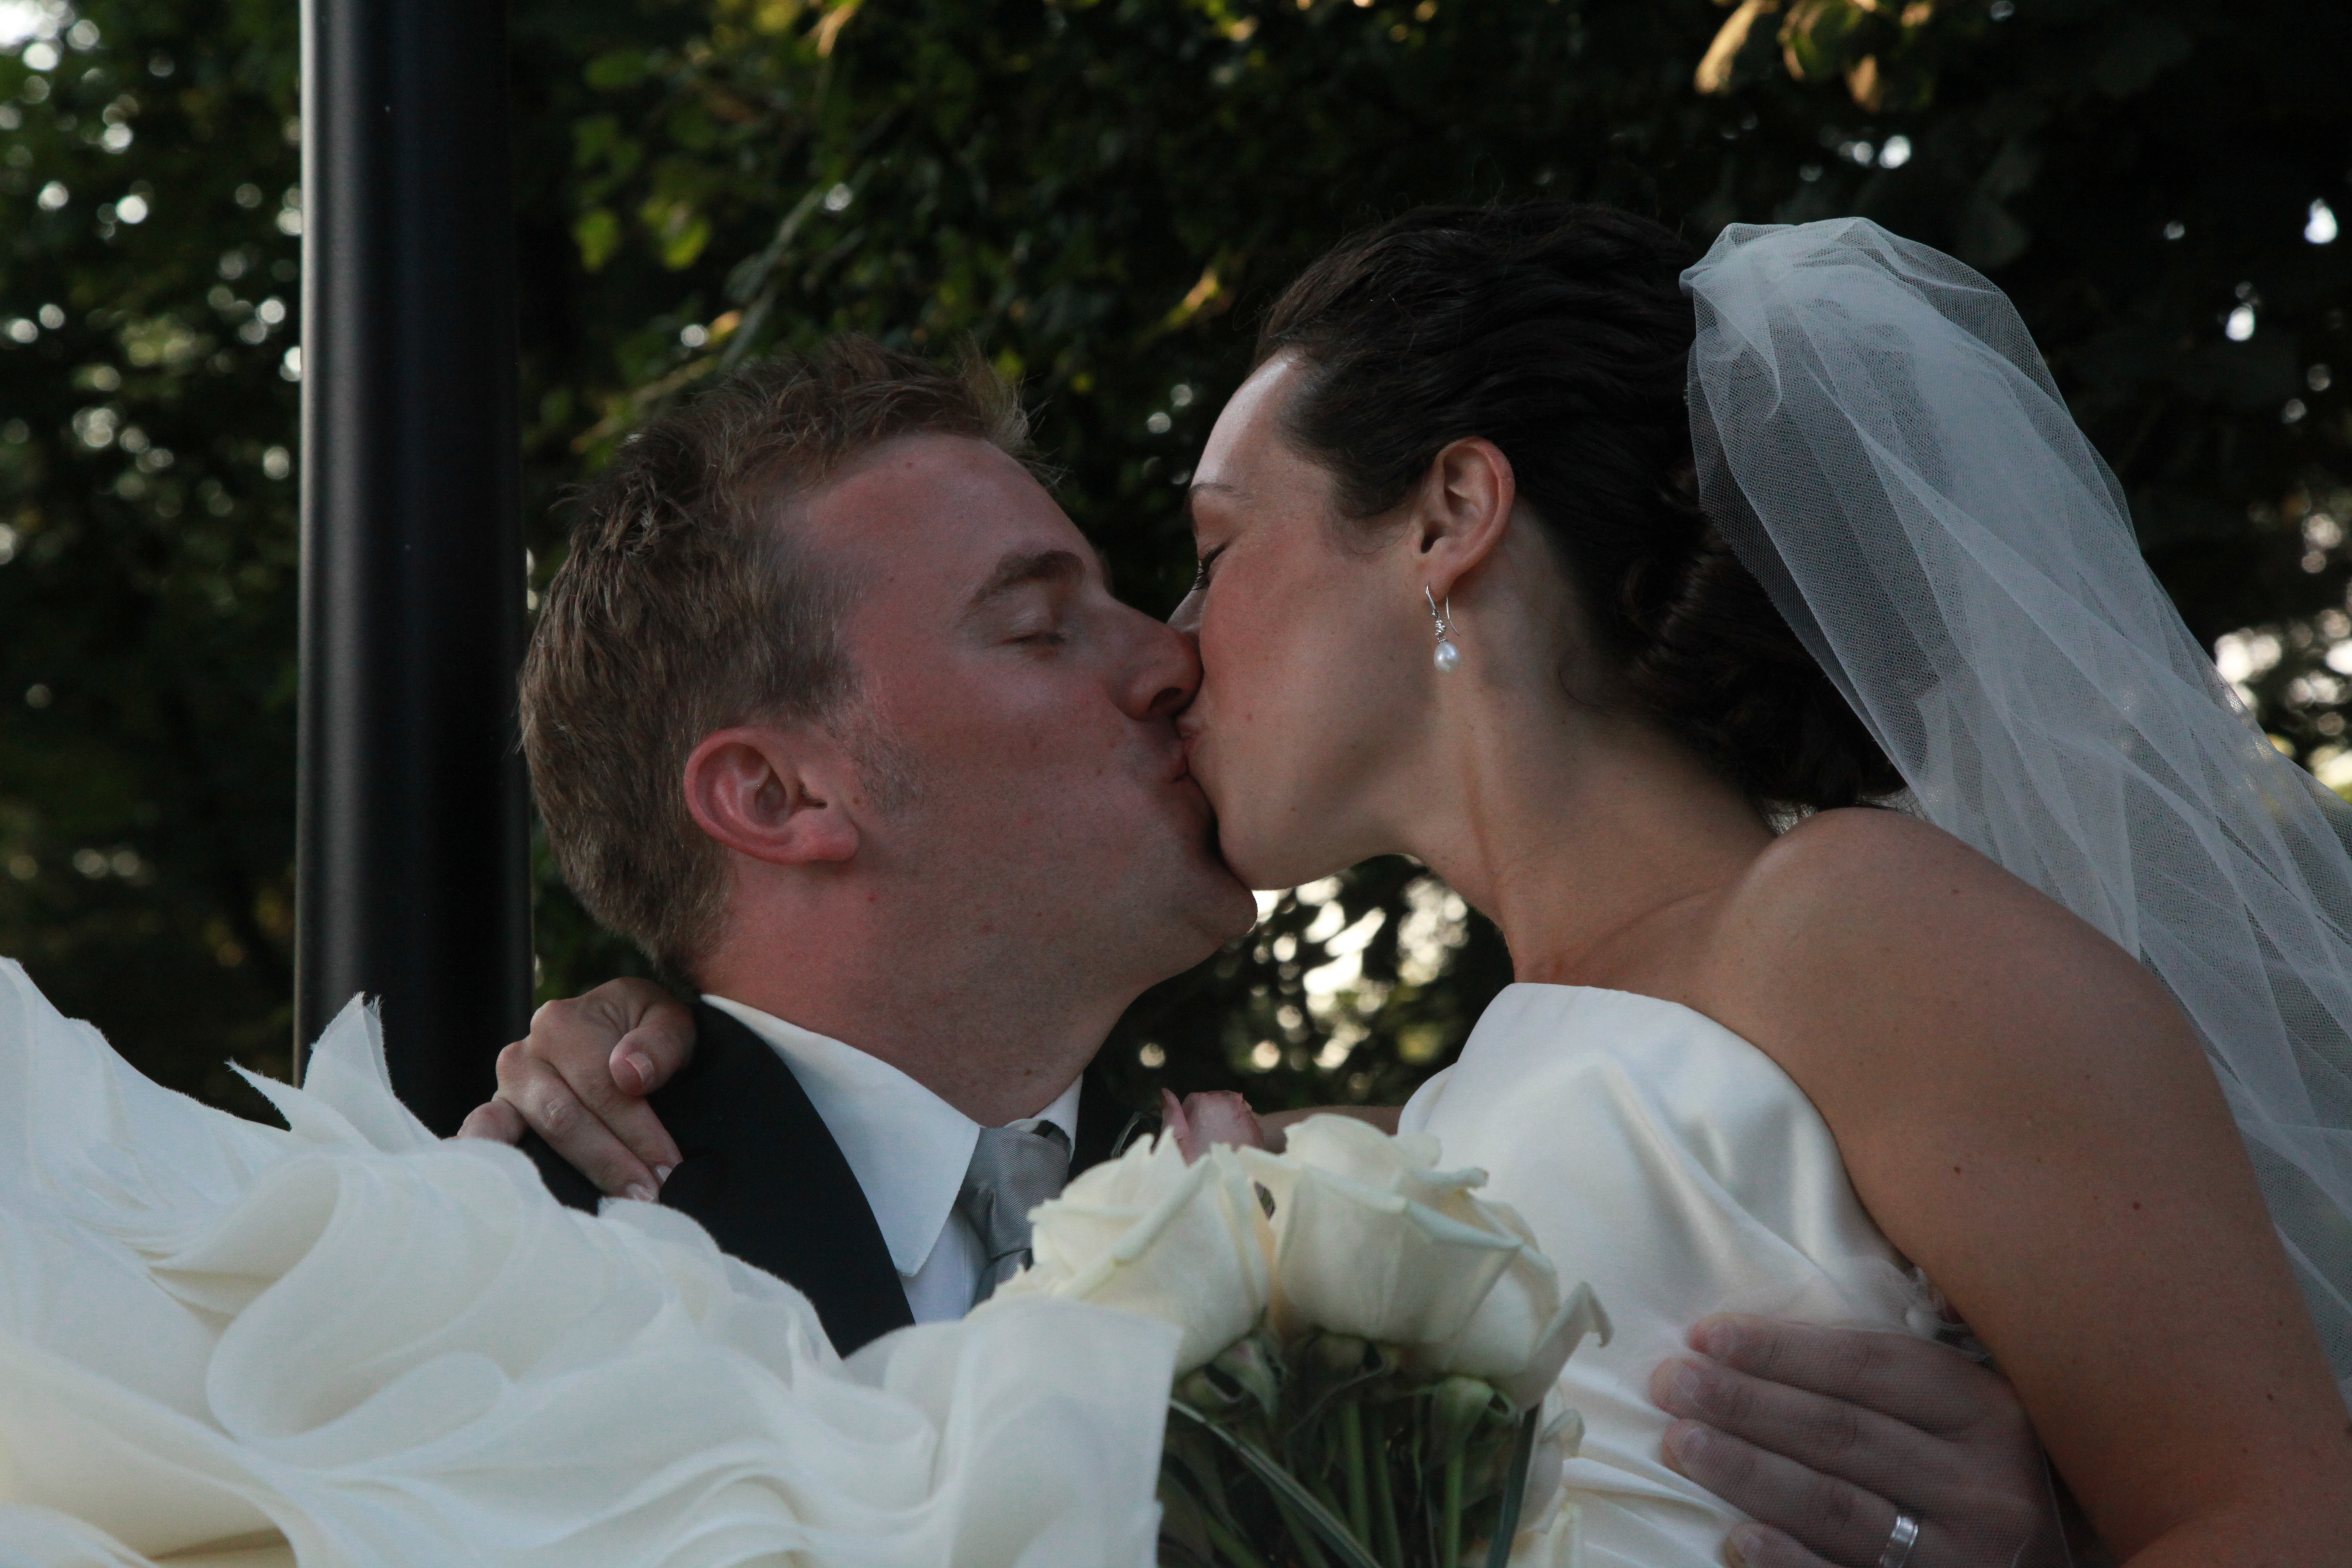 Groom picks up bride with a Kiss